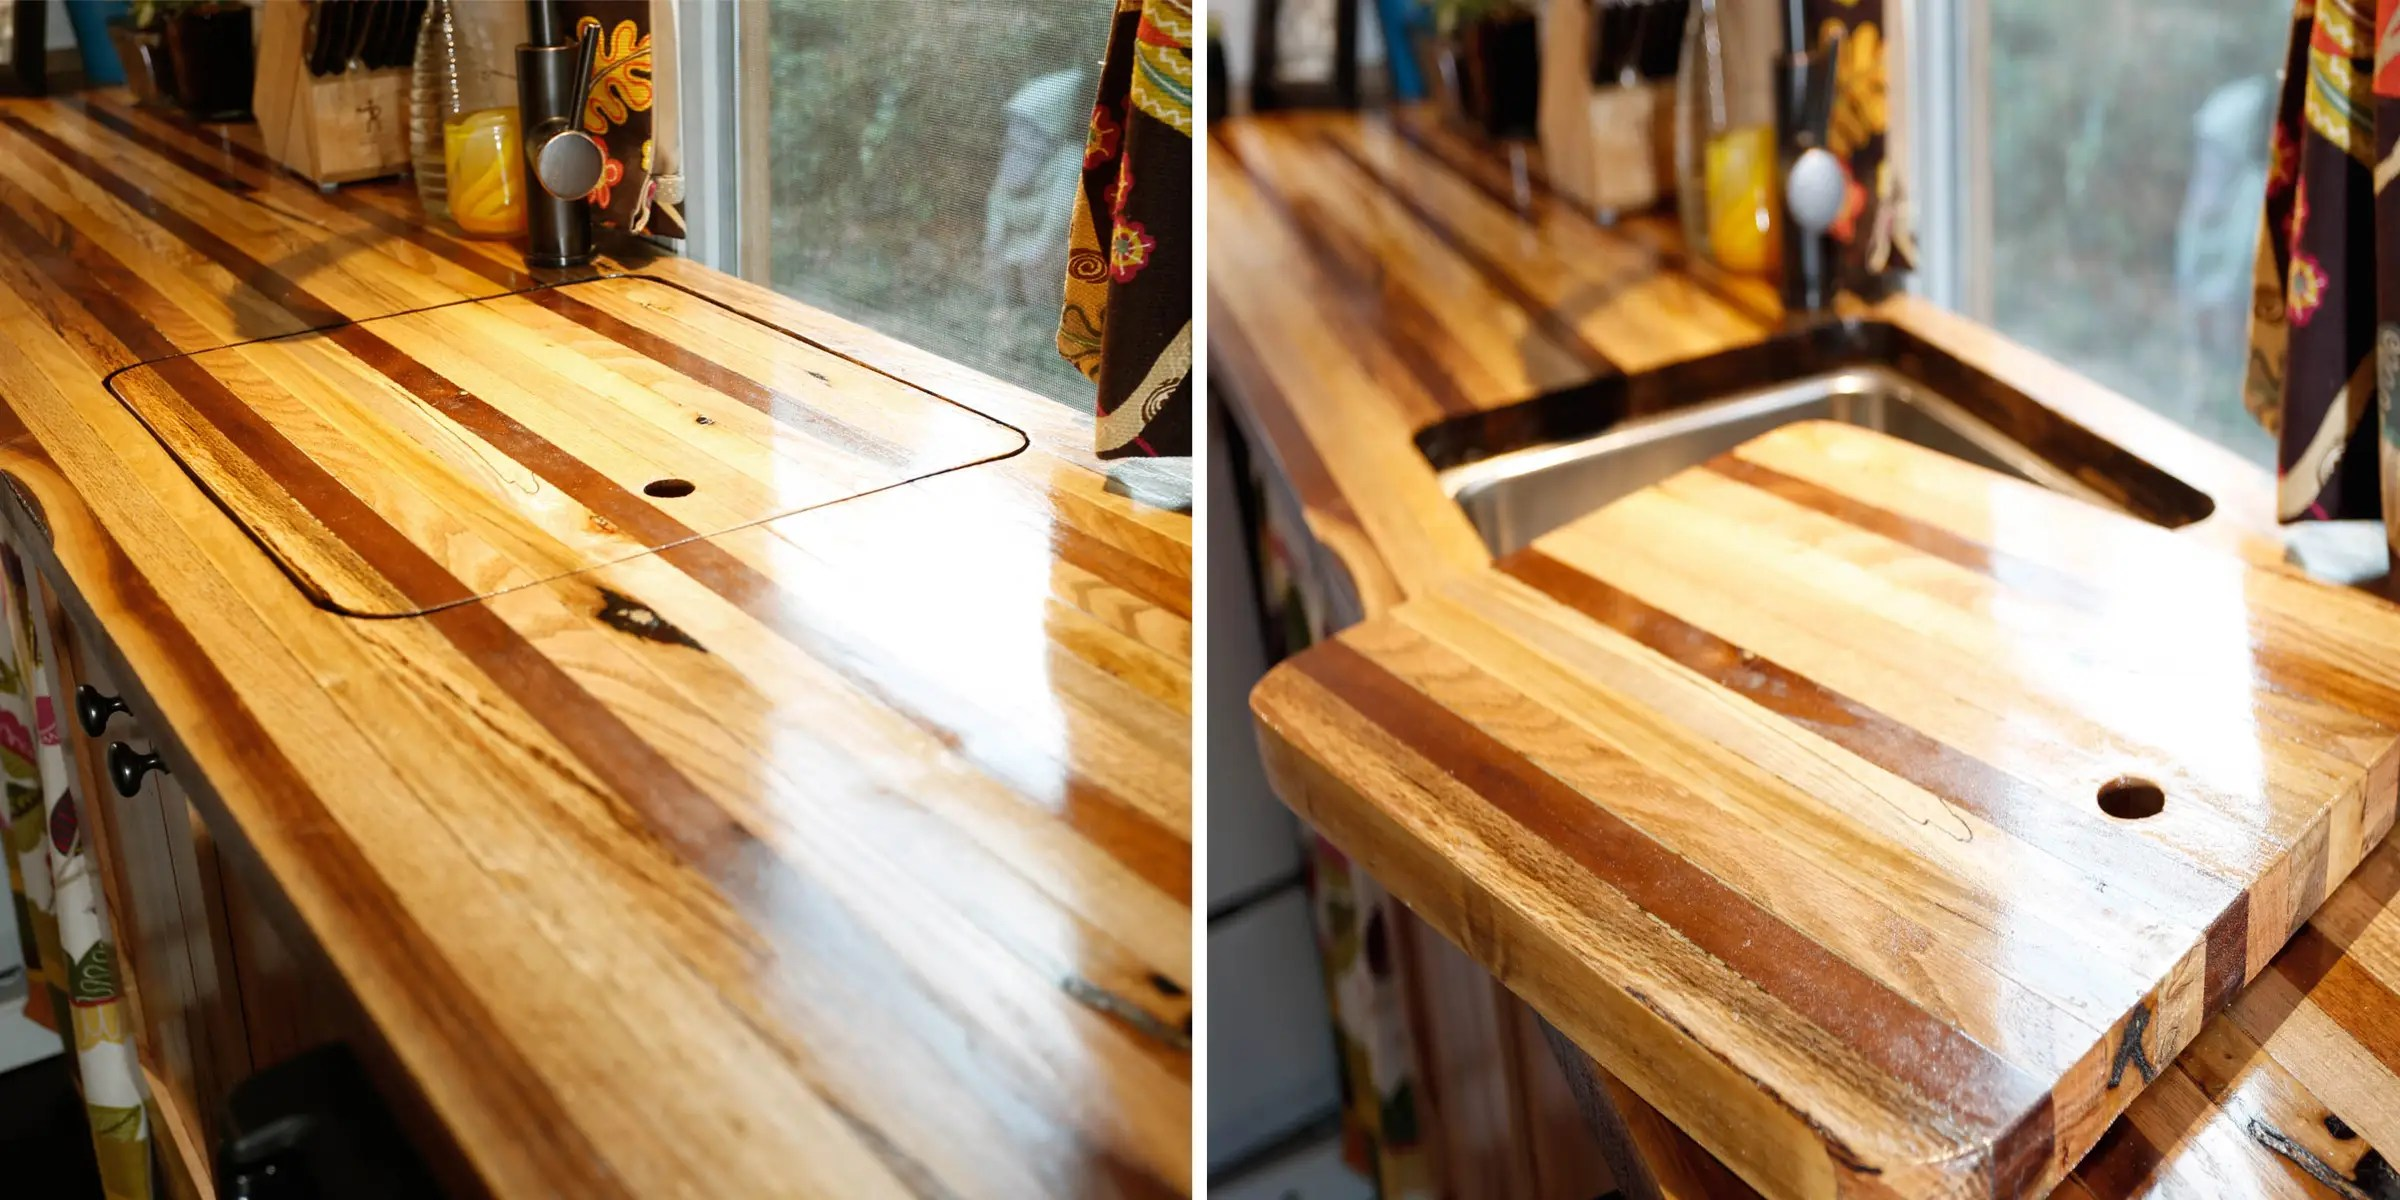 Christian handcrafted the butcher's block countertop from five different kinds of trees that fell in a tornado in his parent's backyard.